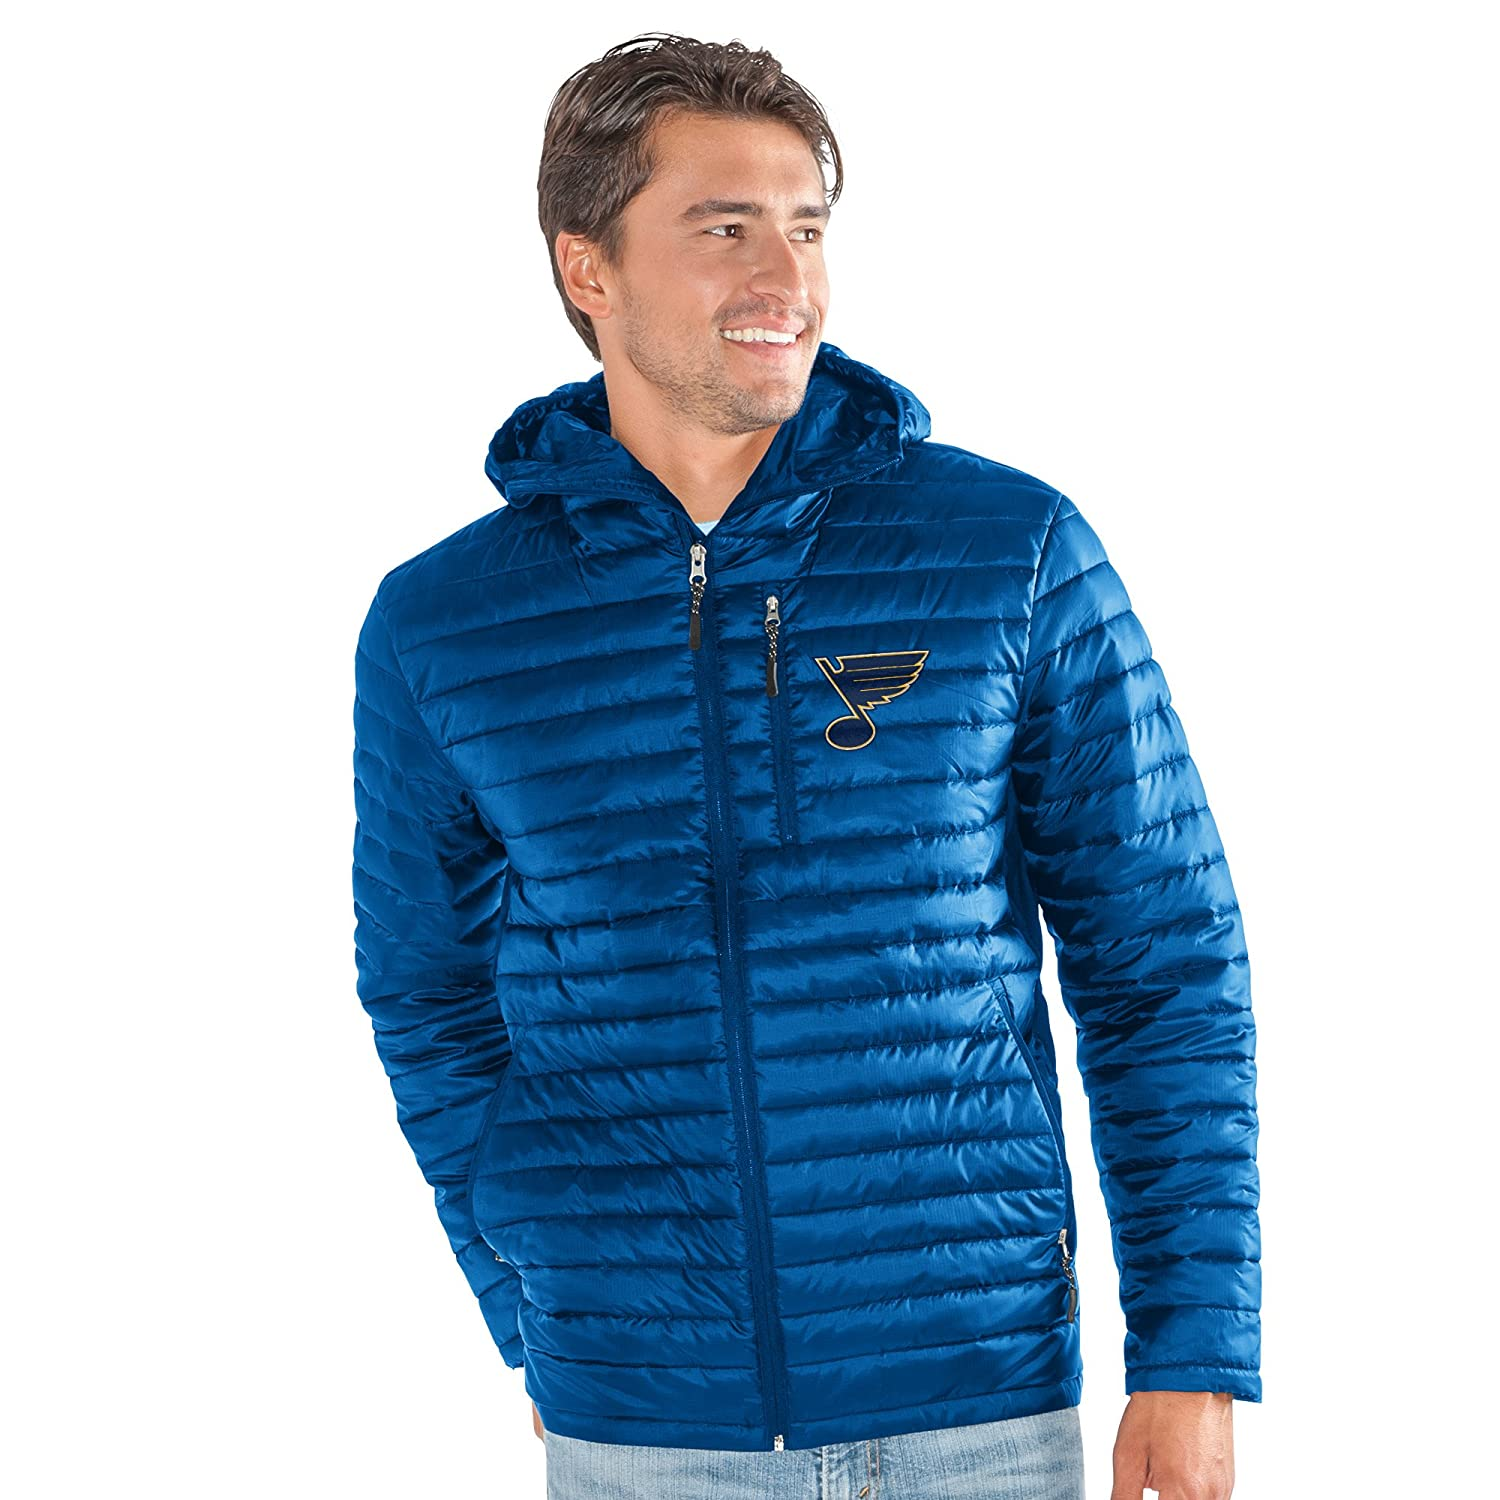 Royal G-III Mens Equator Quilted Jacket Large